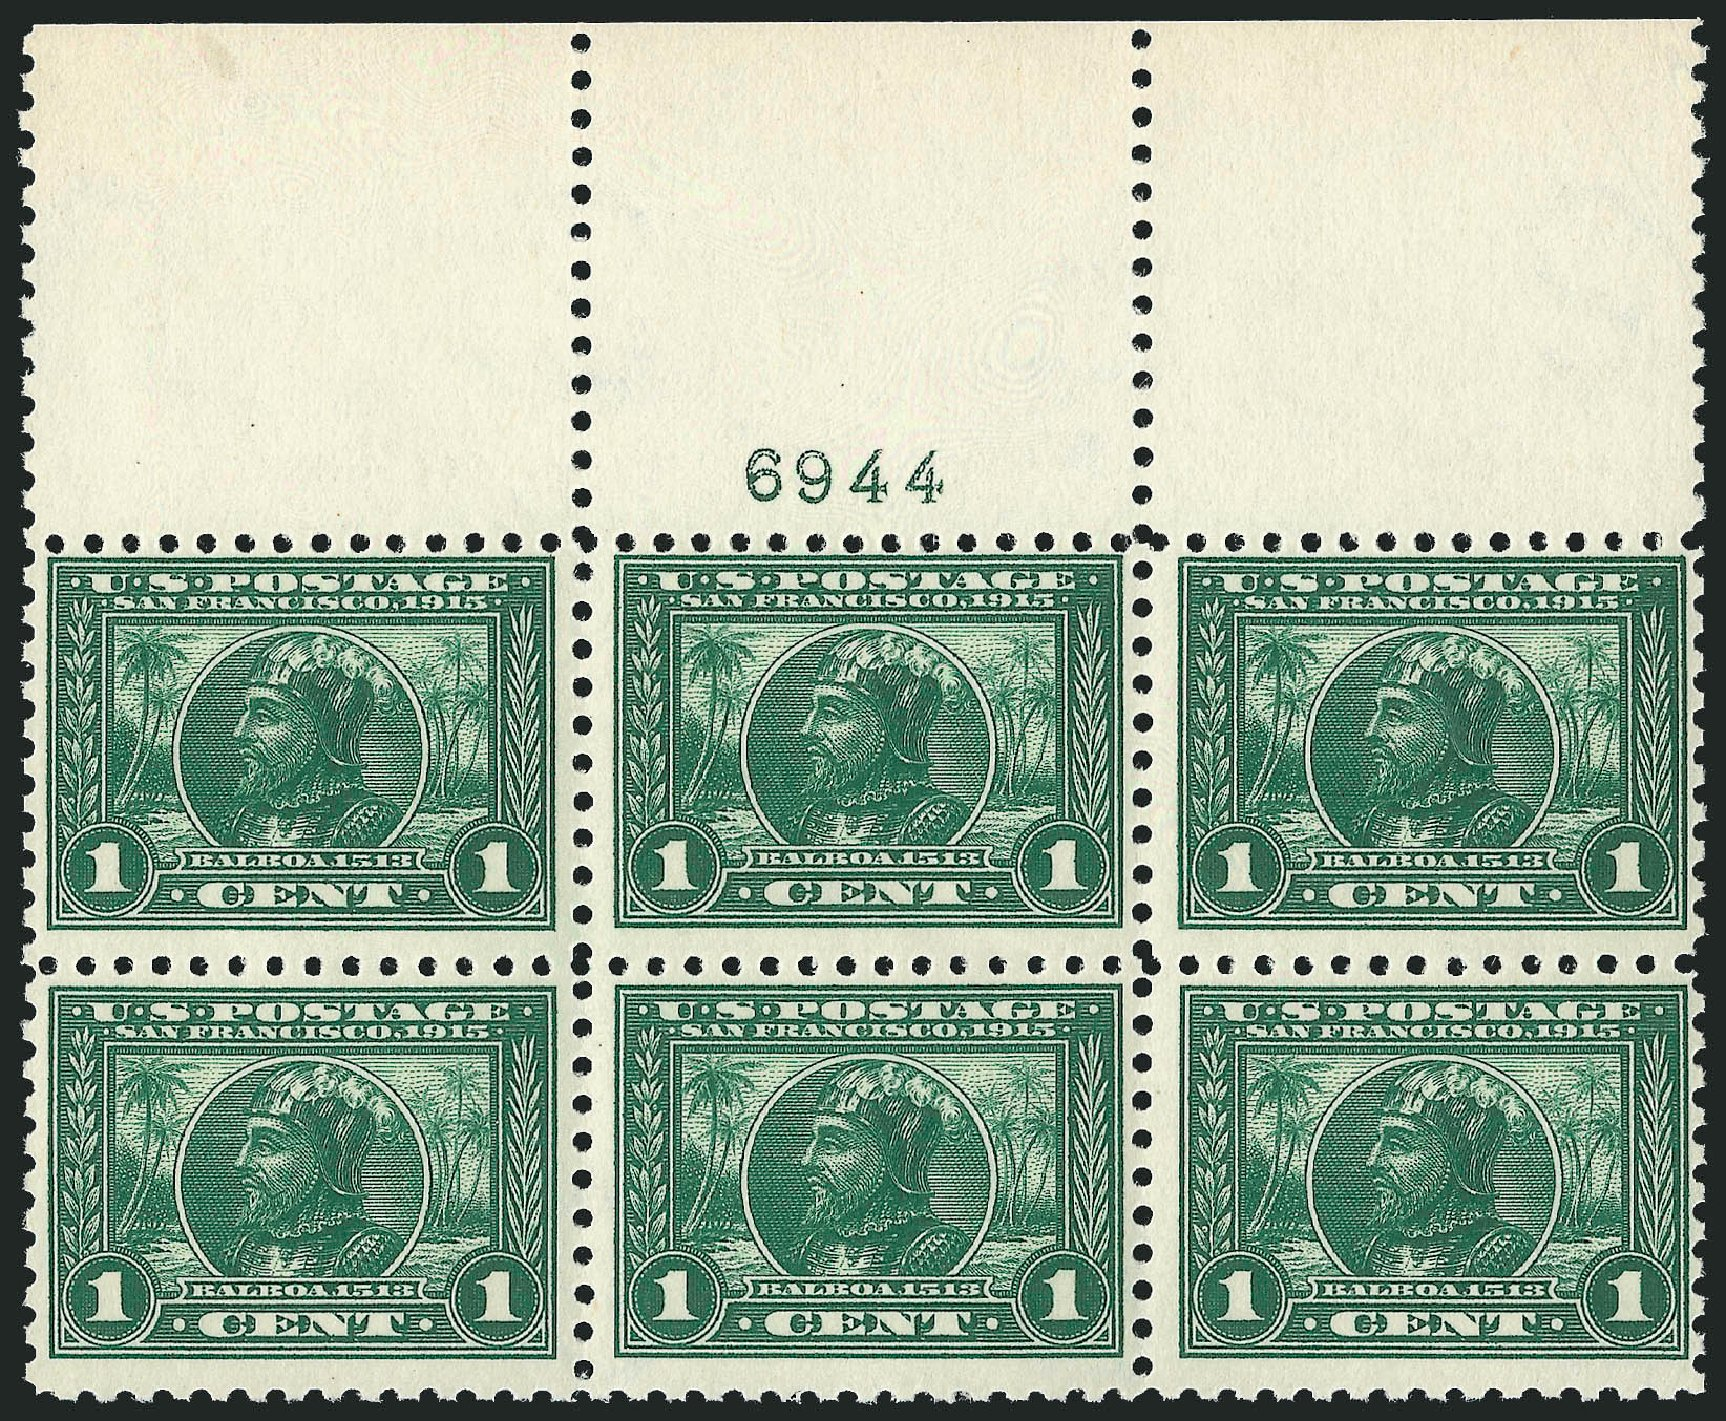 US Stamps Price Scott Catalogue 401: 1915 1c Panama-Pacific Exposition. Robert Siegel Auction Galleries, Oct 2014, Sale 1082, Lot 453